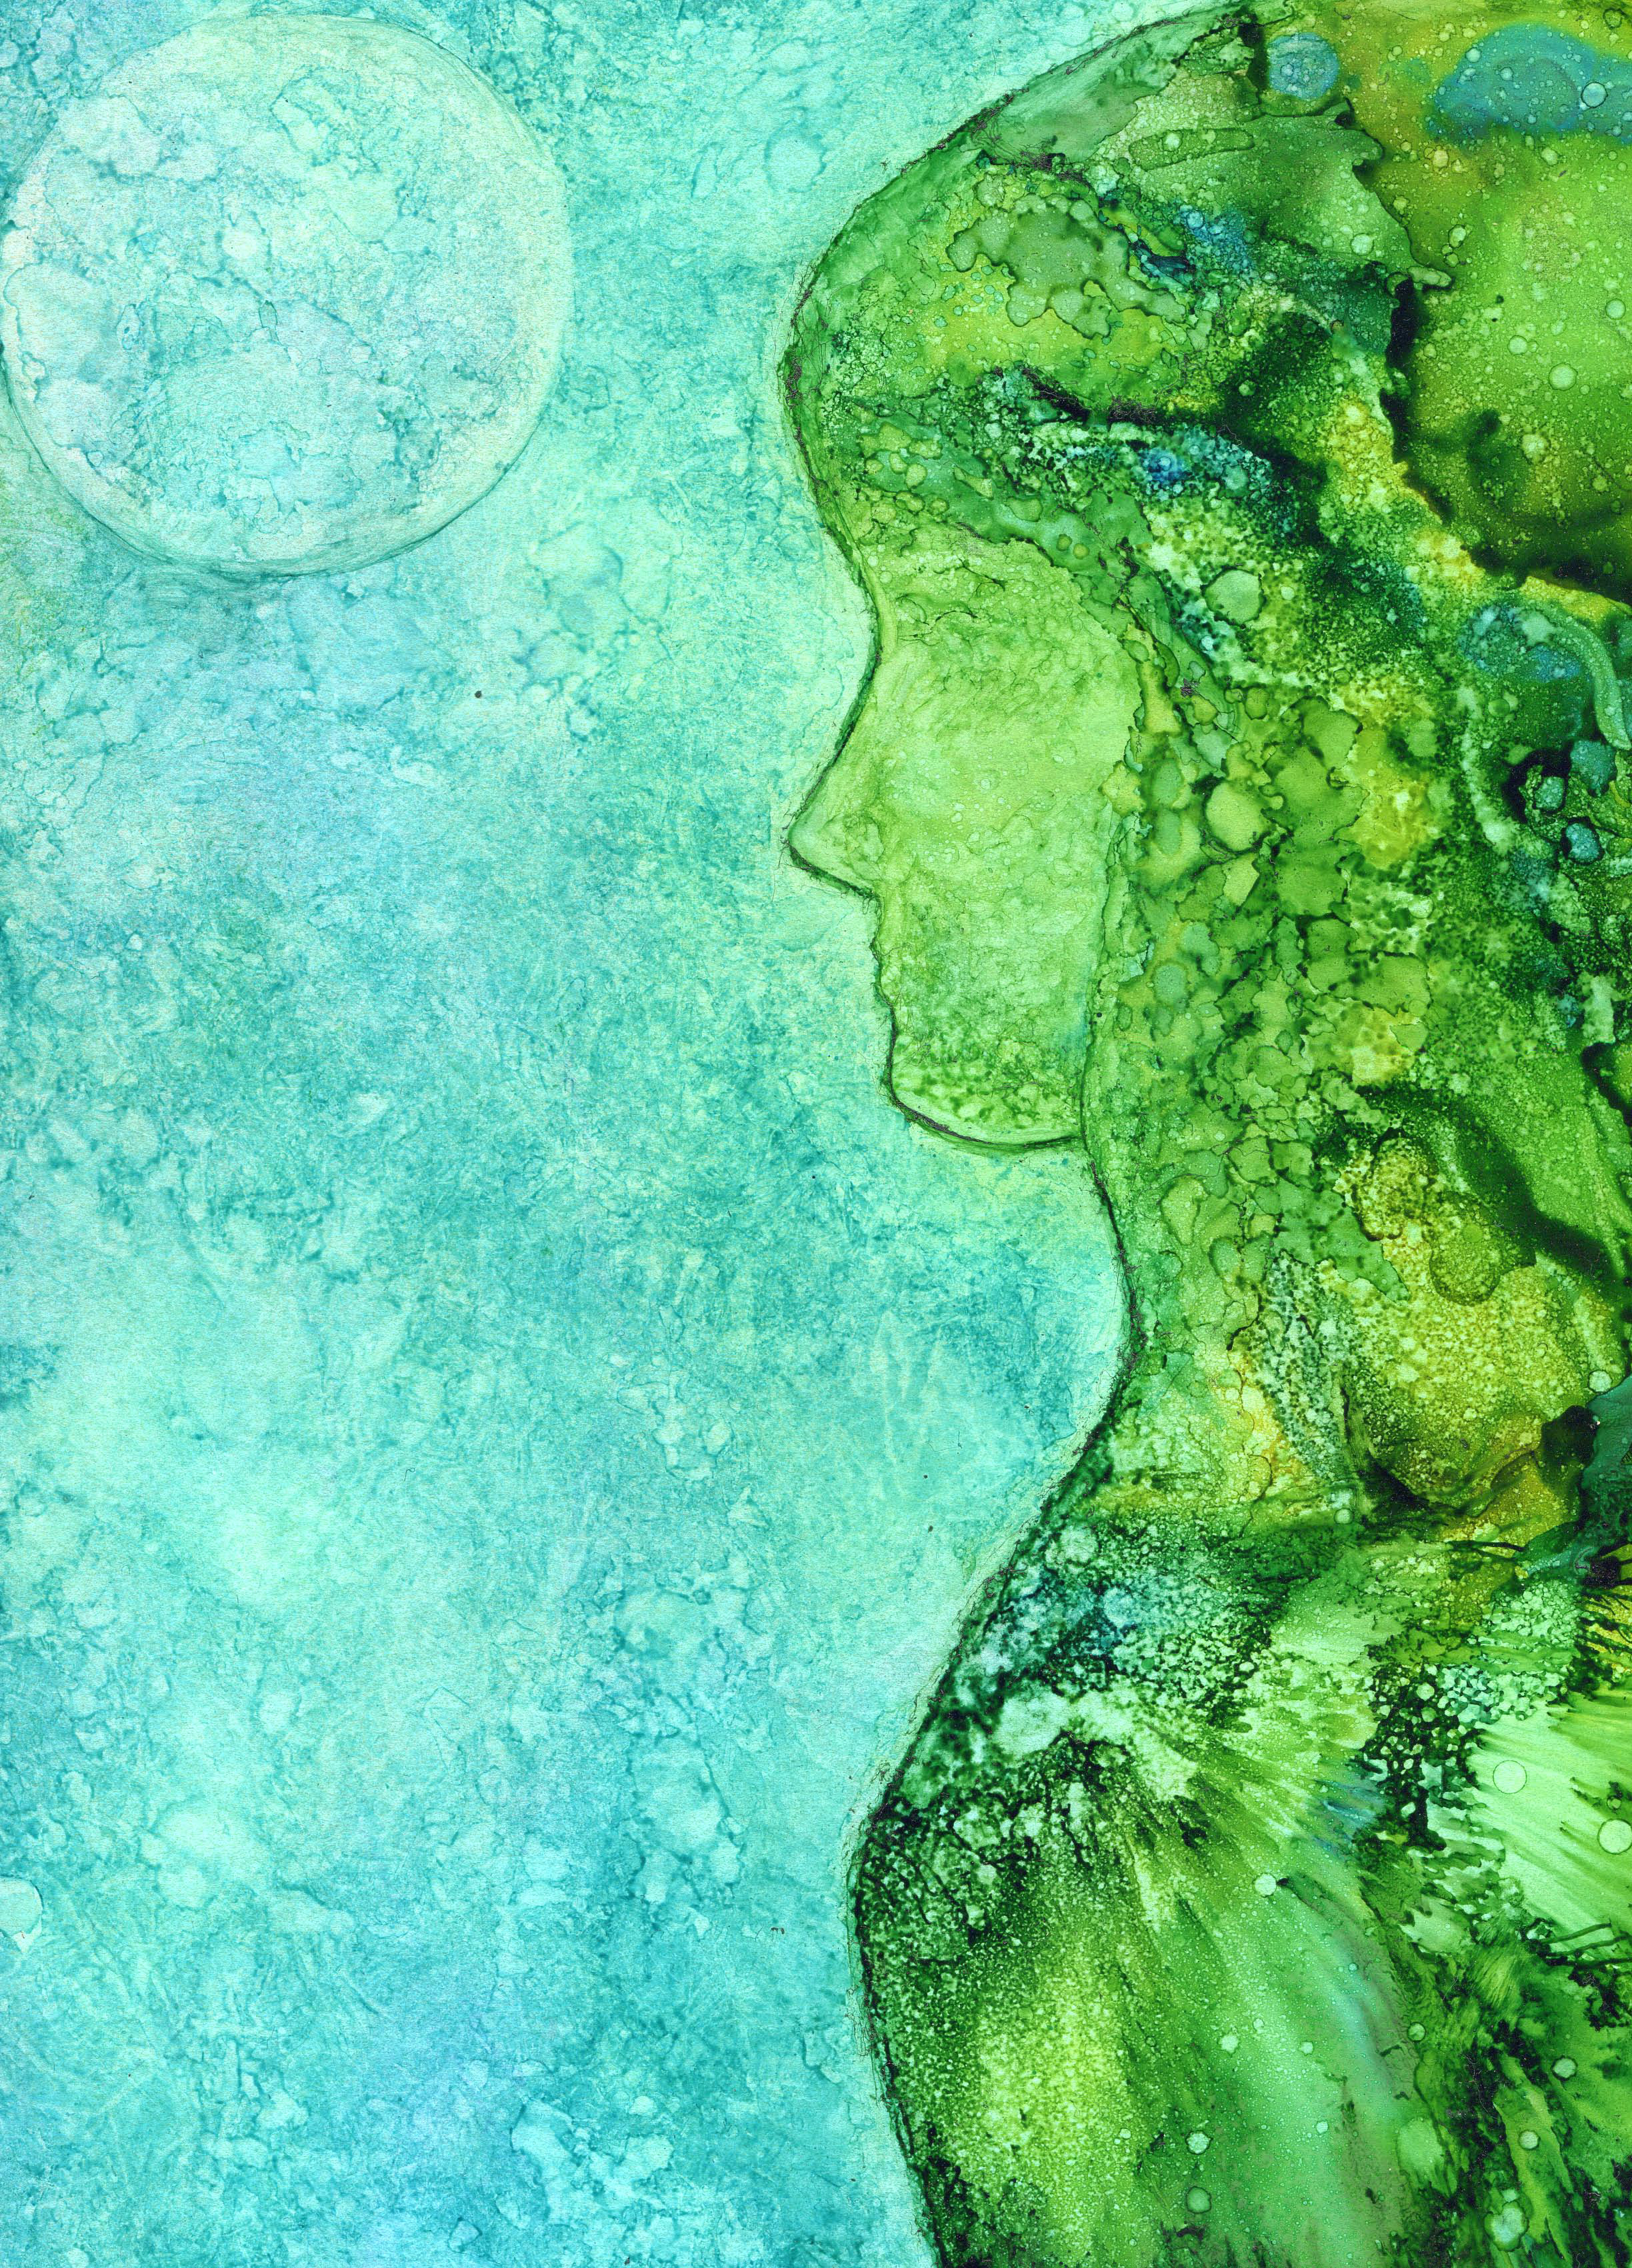 Lady in Green - Alcohol Ink 9 X 12 - $150